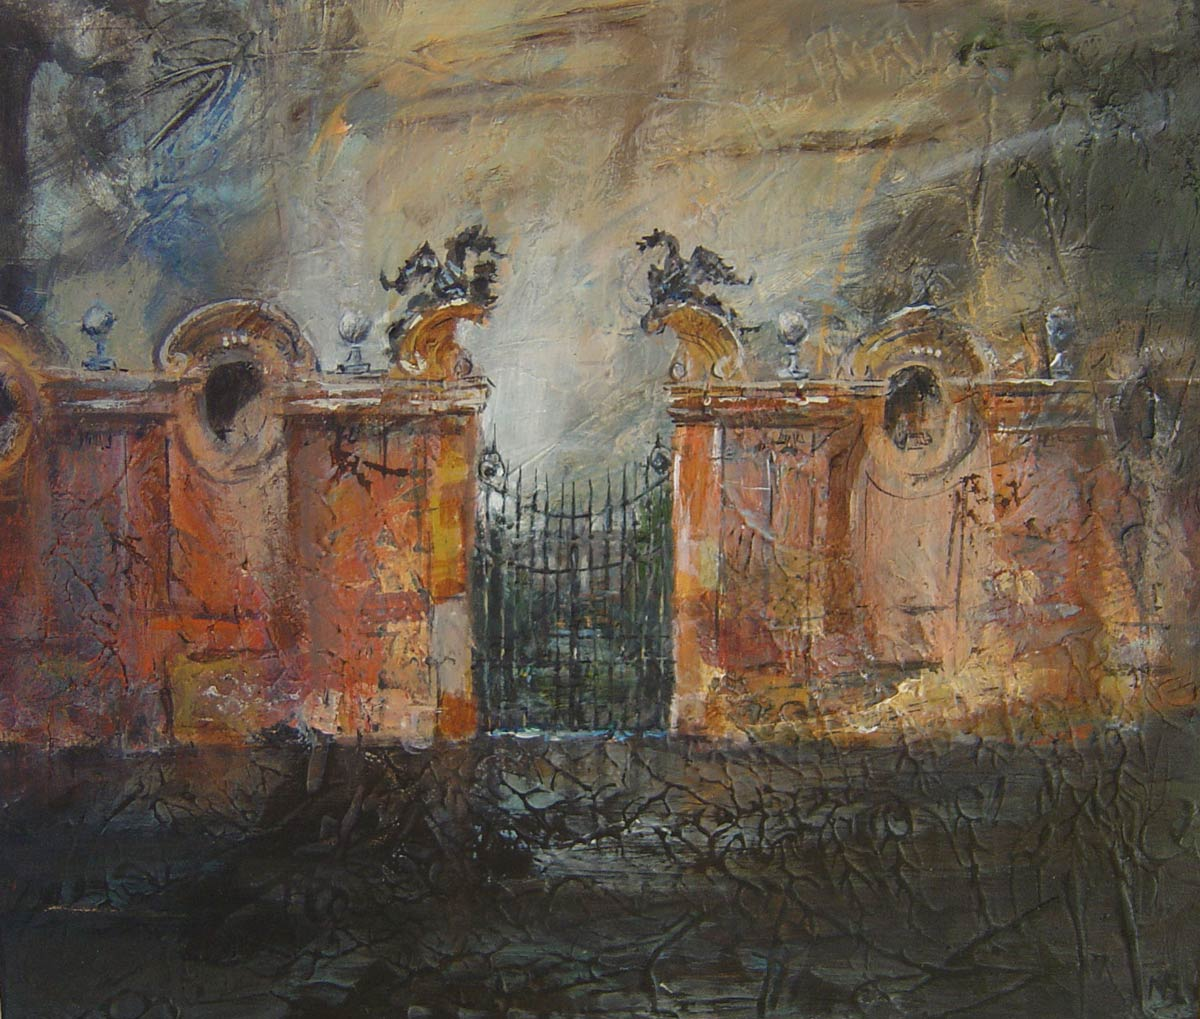 Gates outside Rome Villa Borghese 27 x 31 cm